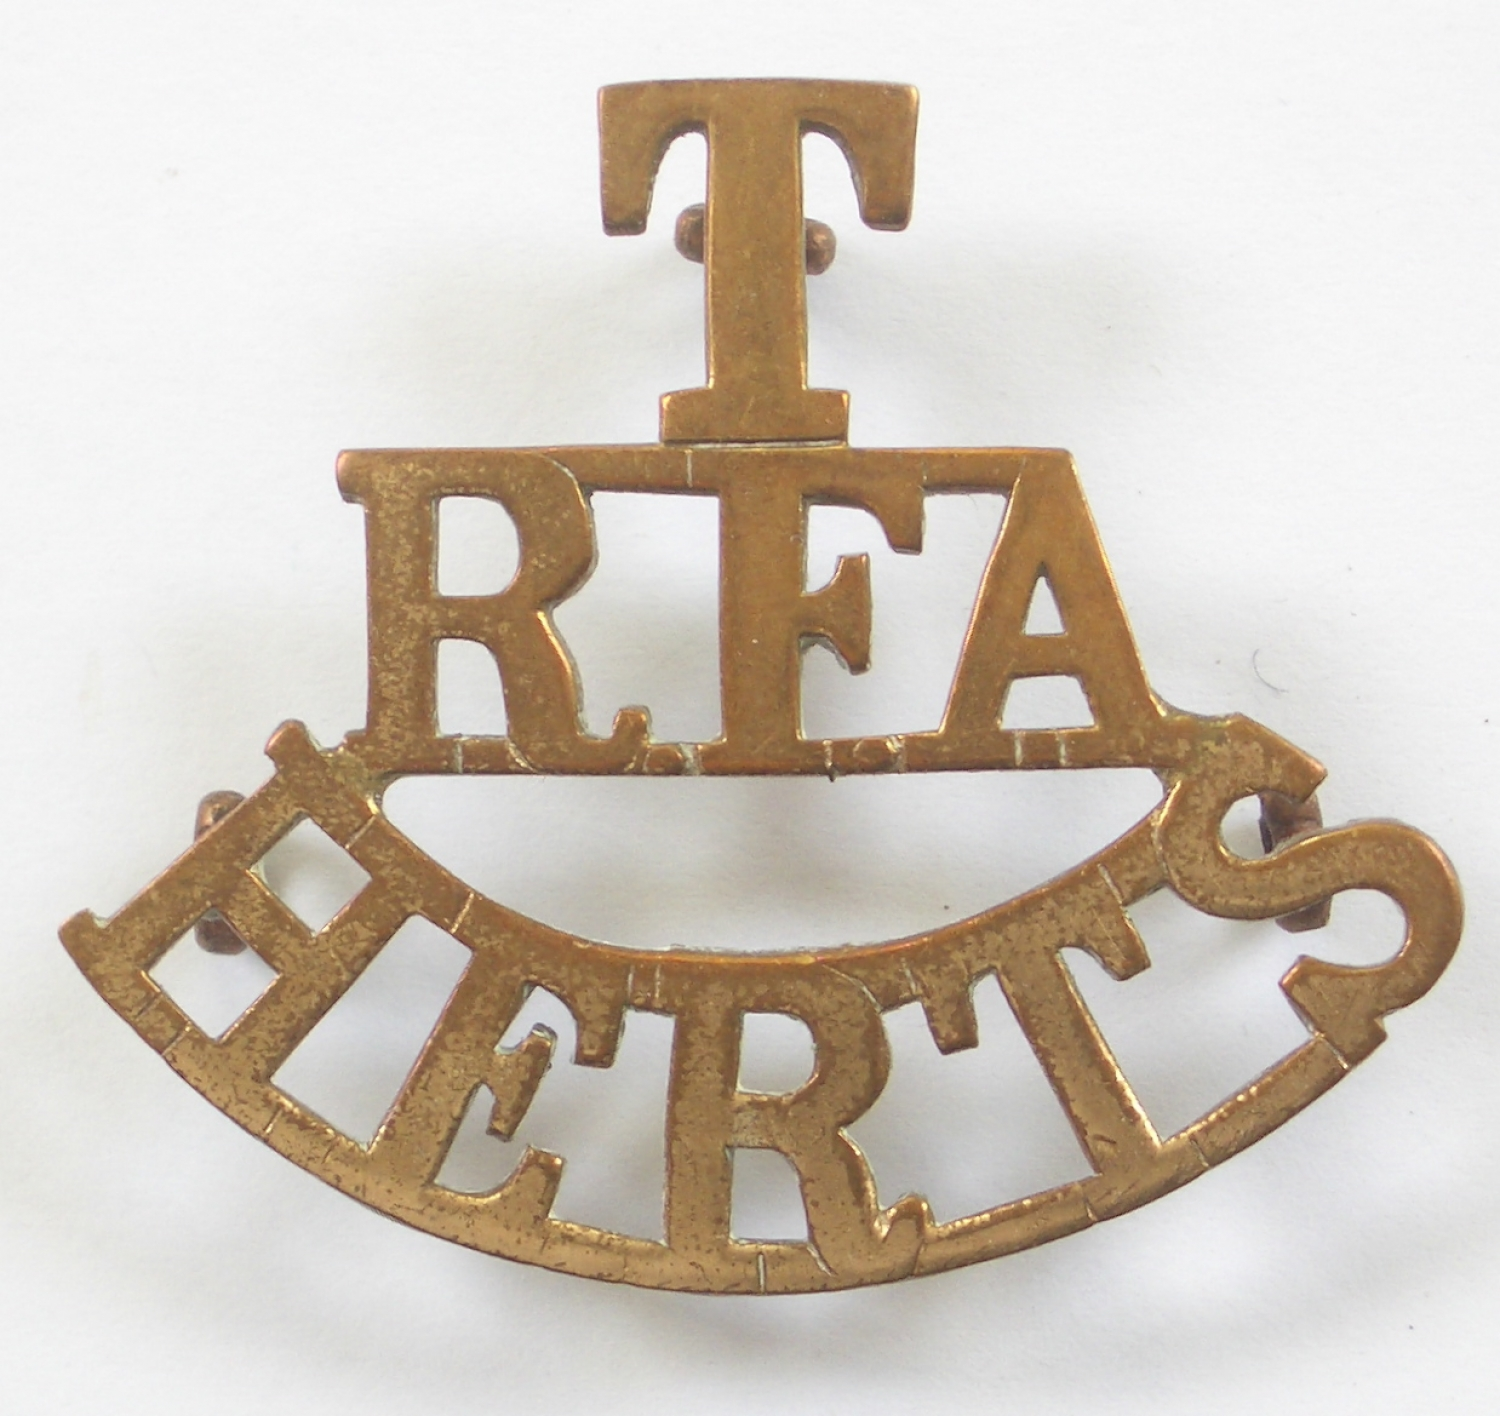 T/RFA/HERTS scarce brass shoulder title